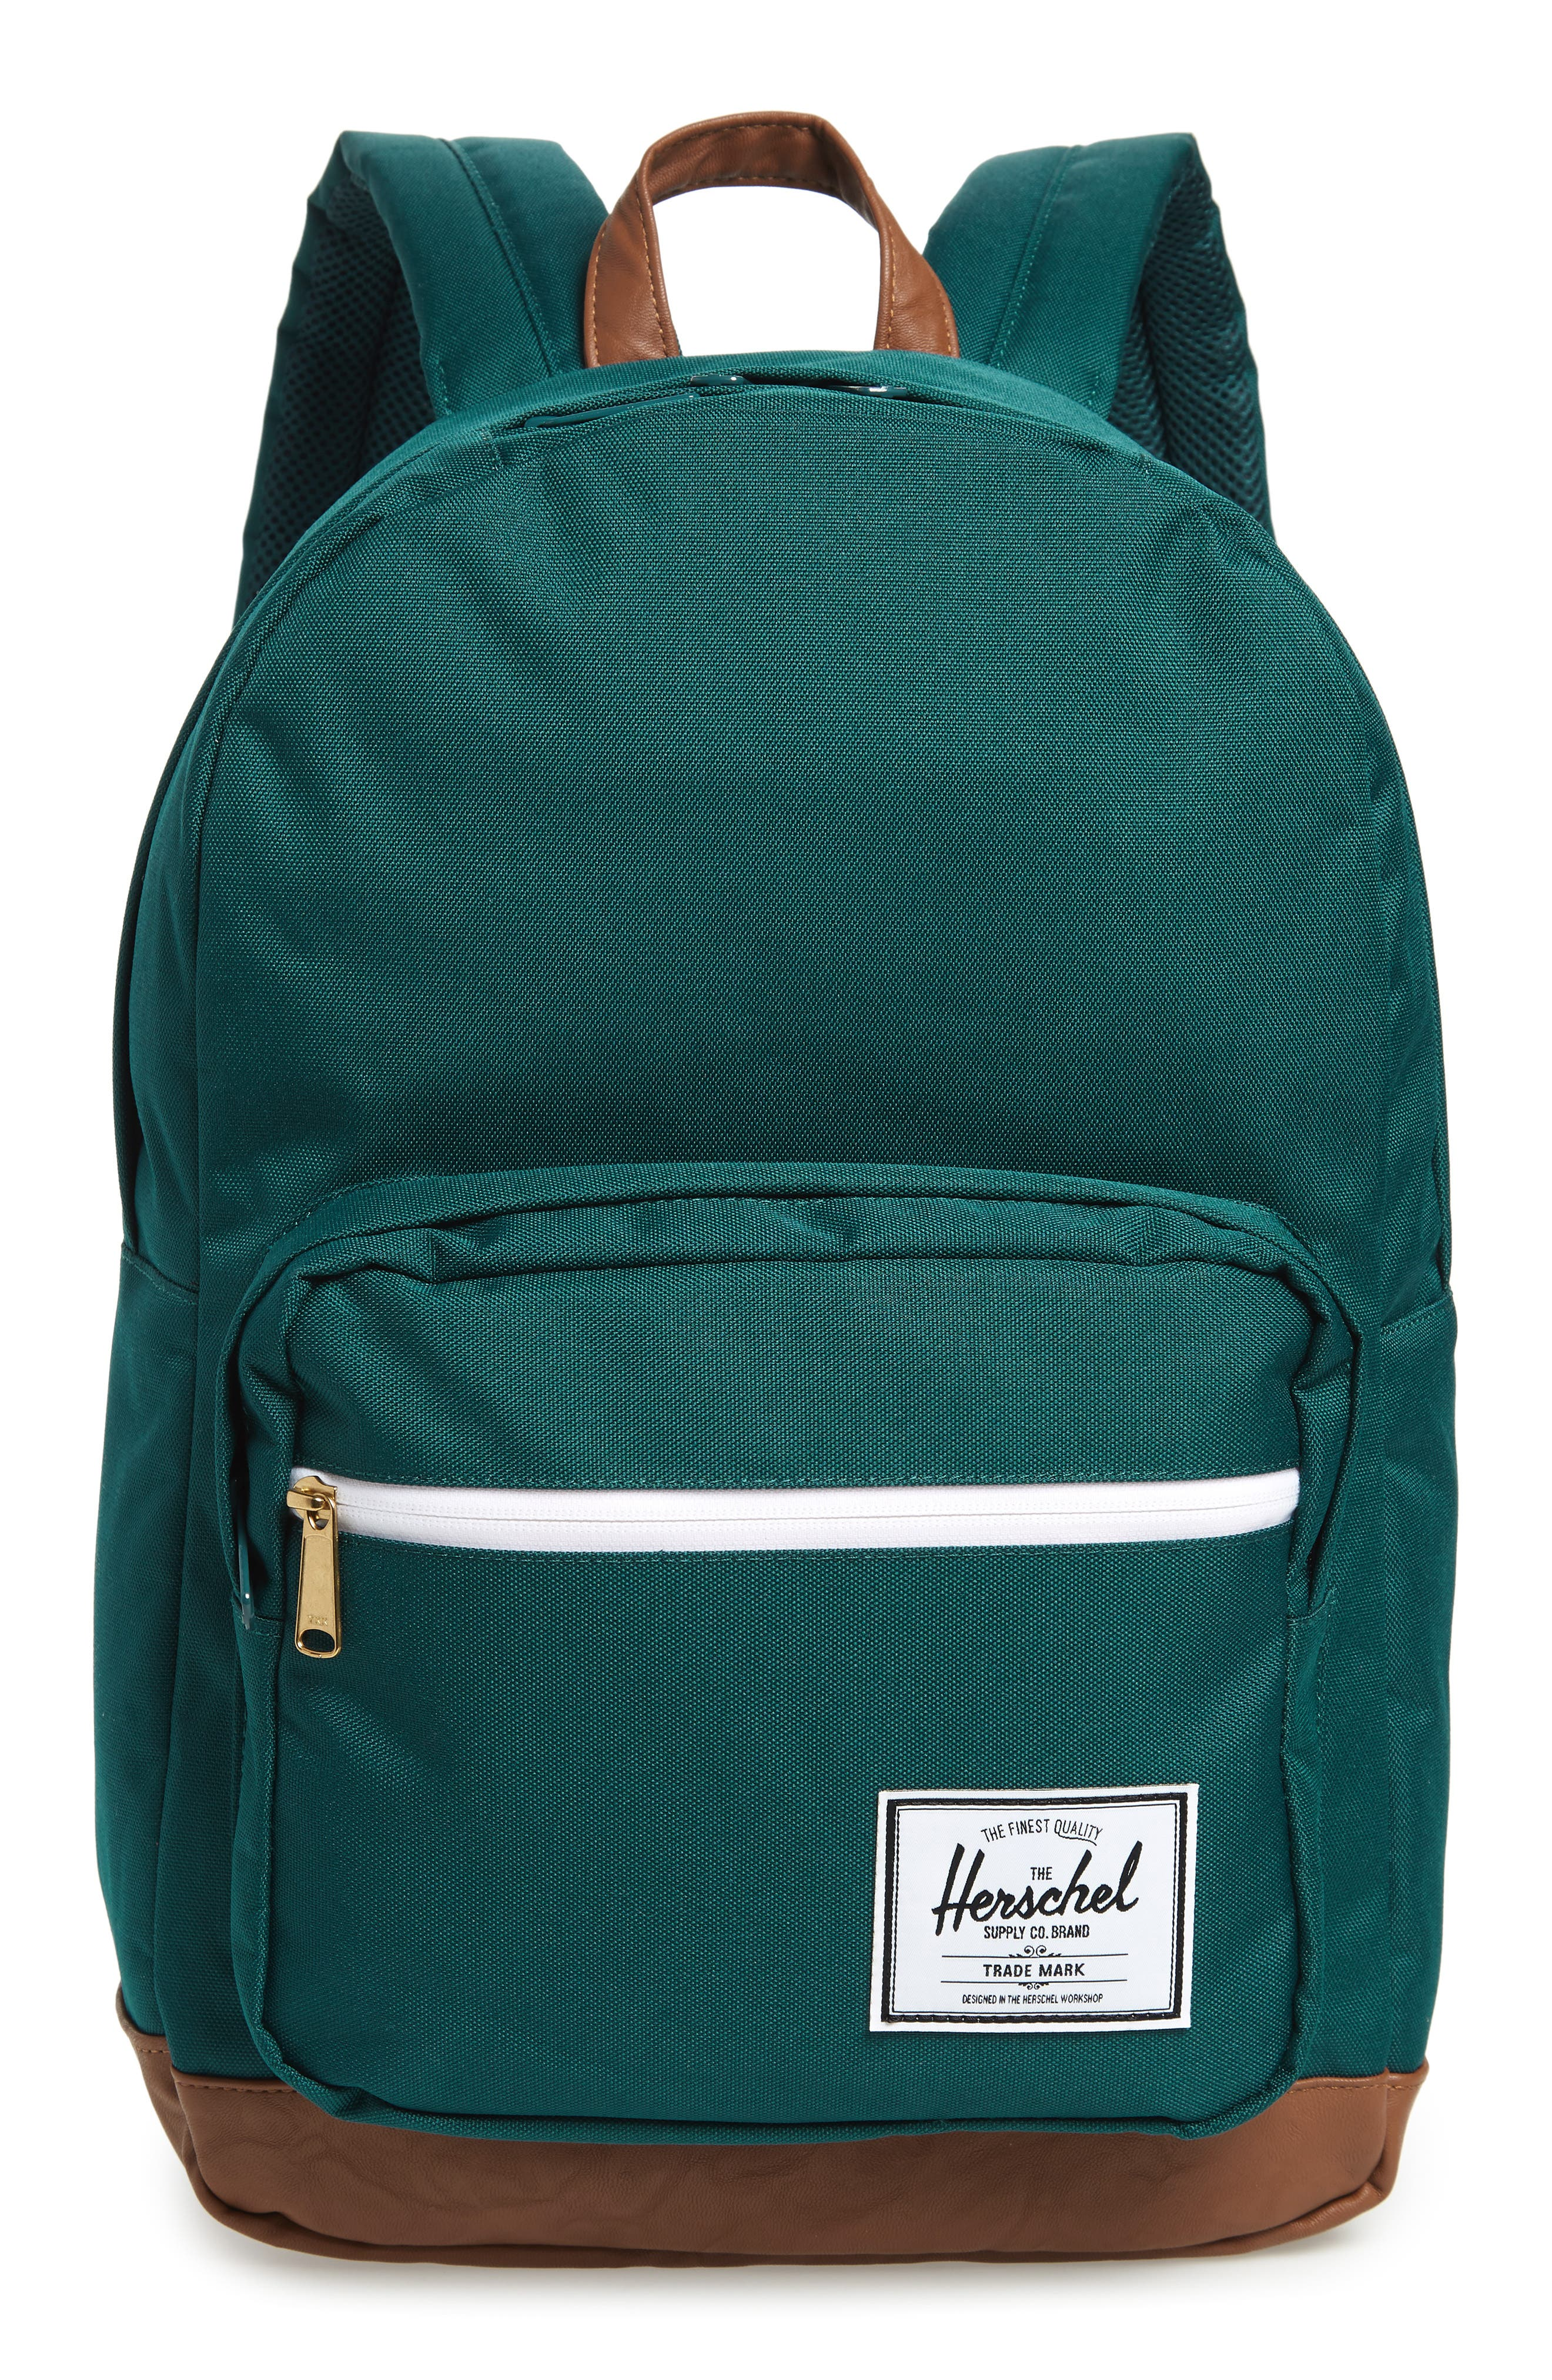 Herschel Supply Co. Pop Quiz Backpack - Blue/green